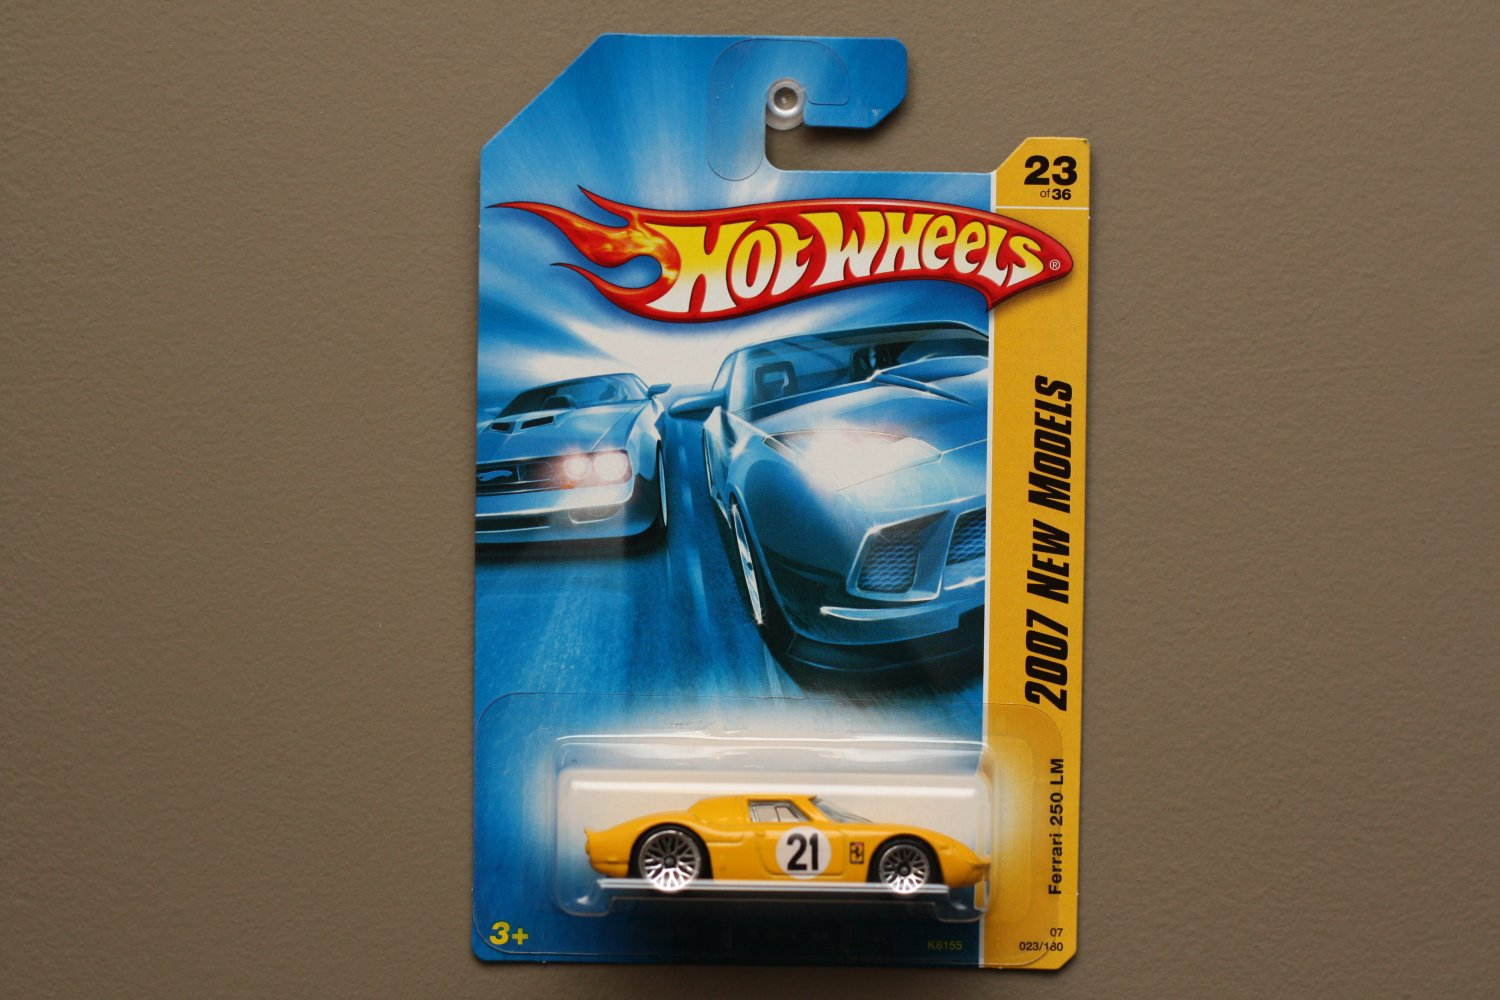 Hot Wheels 2007 New Models Ferrari 250 LM (yellow)